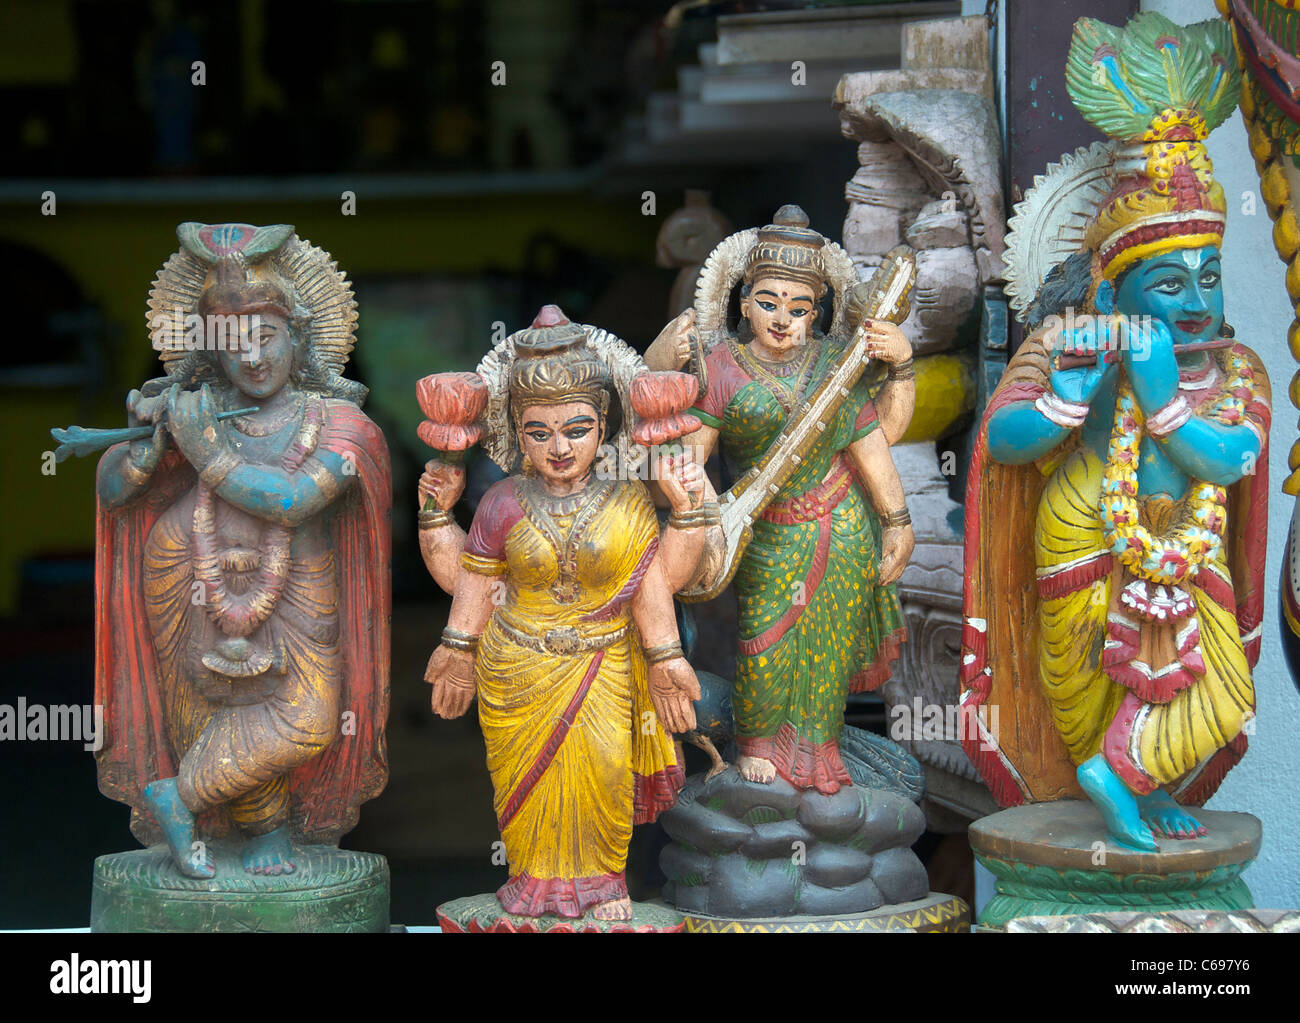 Statues of Hindu gods in shop window Jew Town Kochi Kerala South India - Stock Image